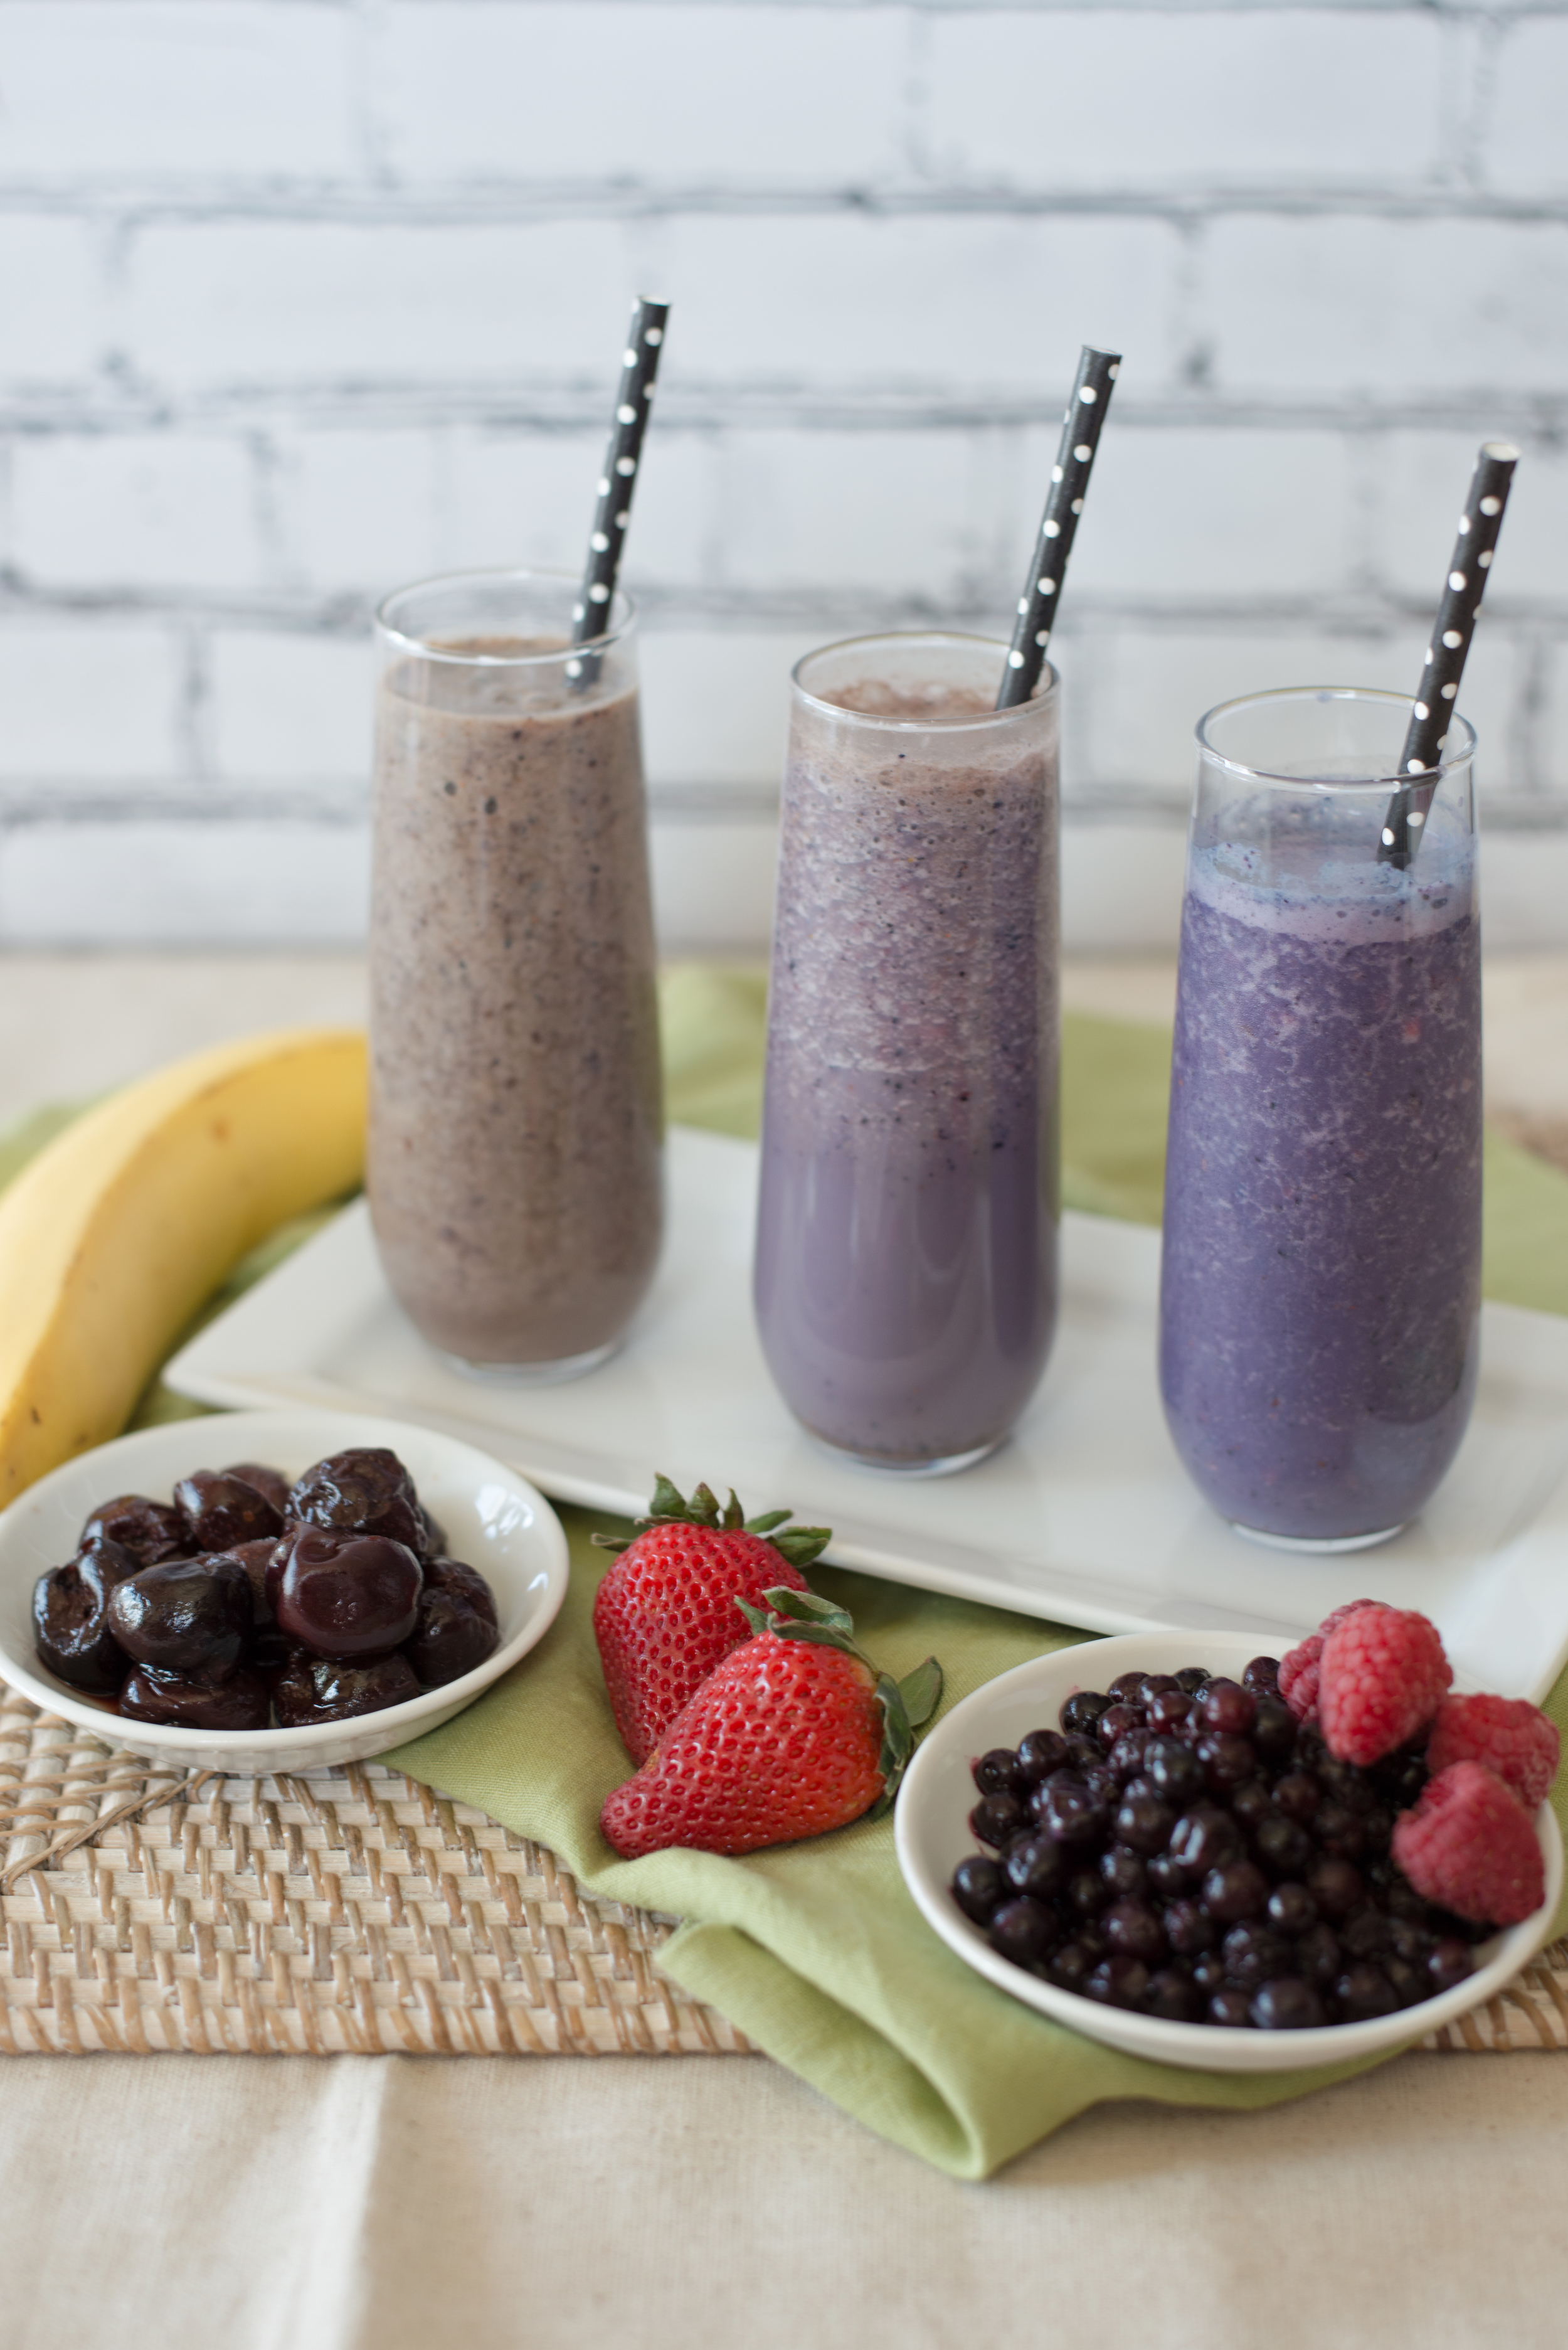 Fruit and smoothies